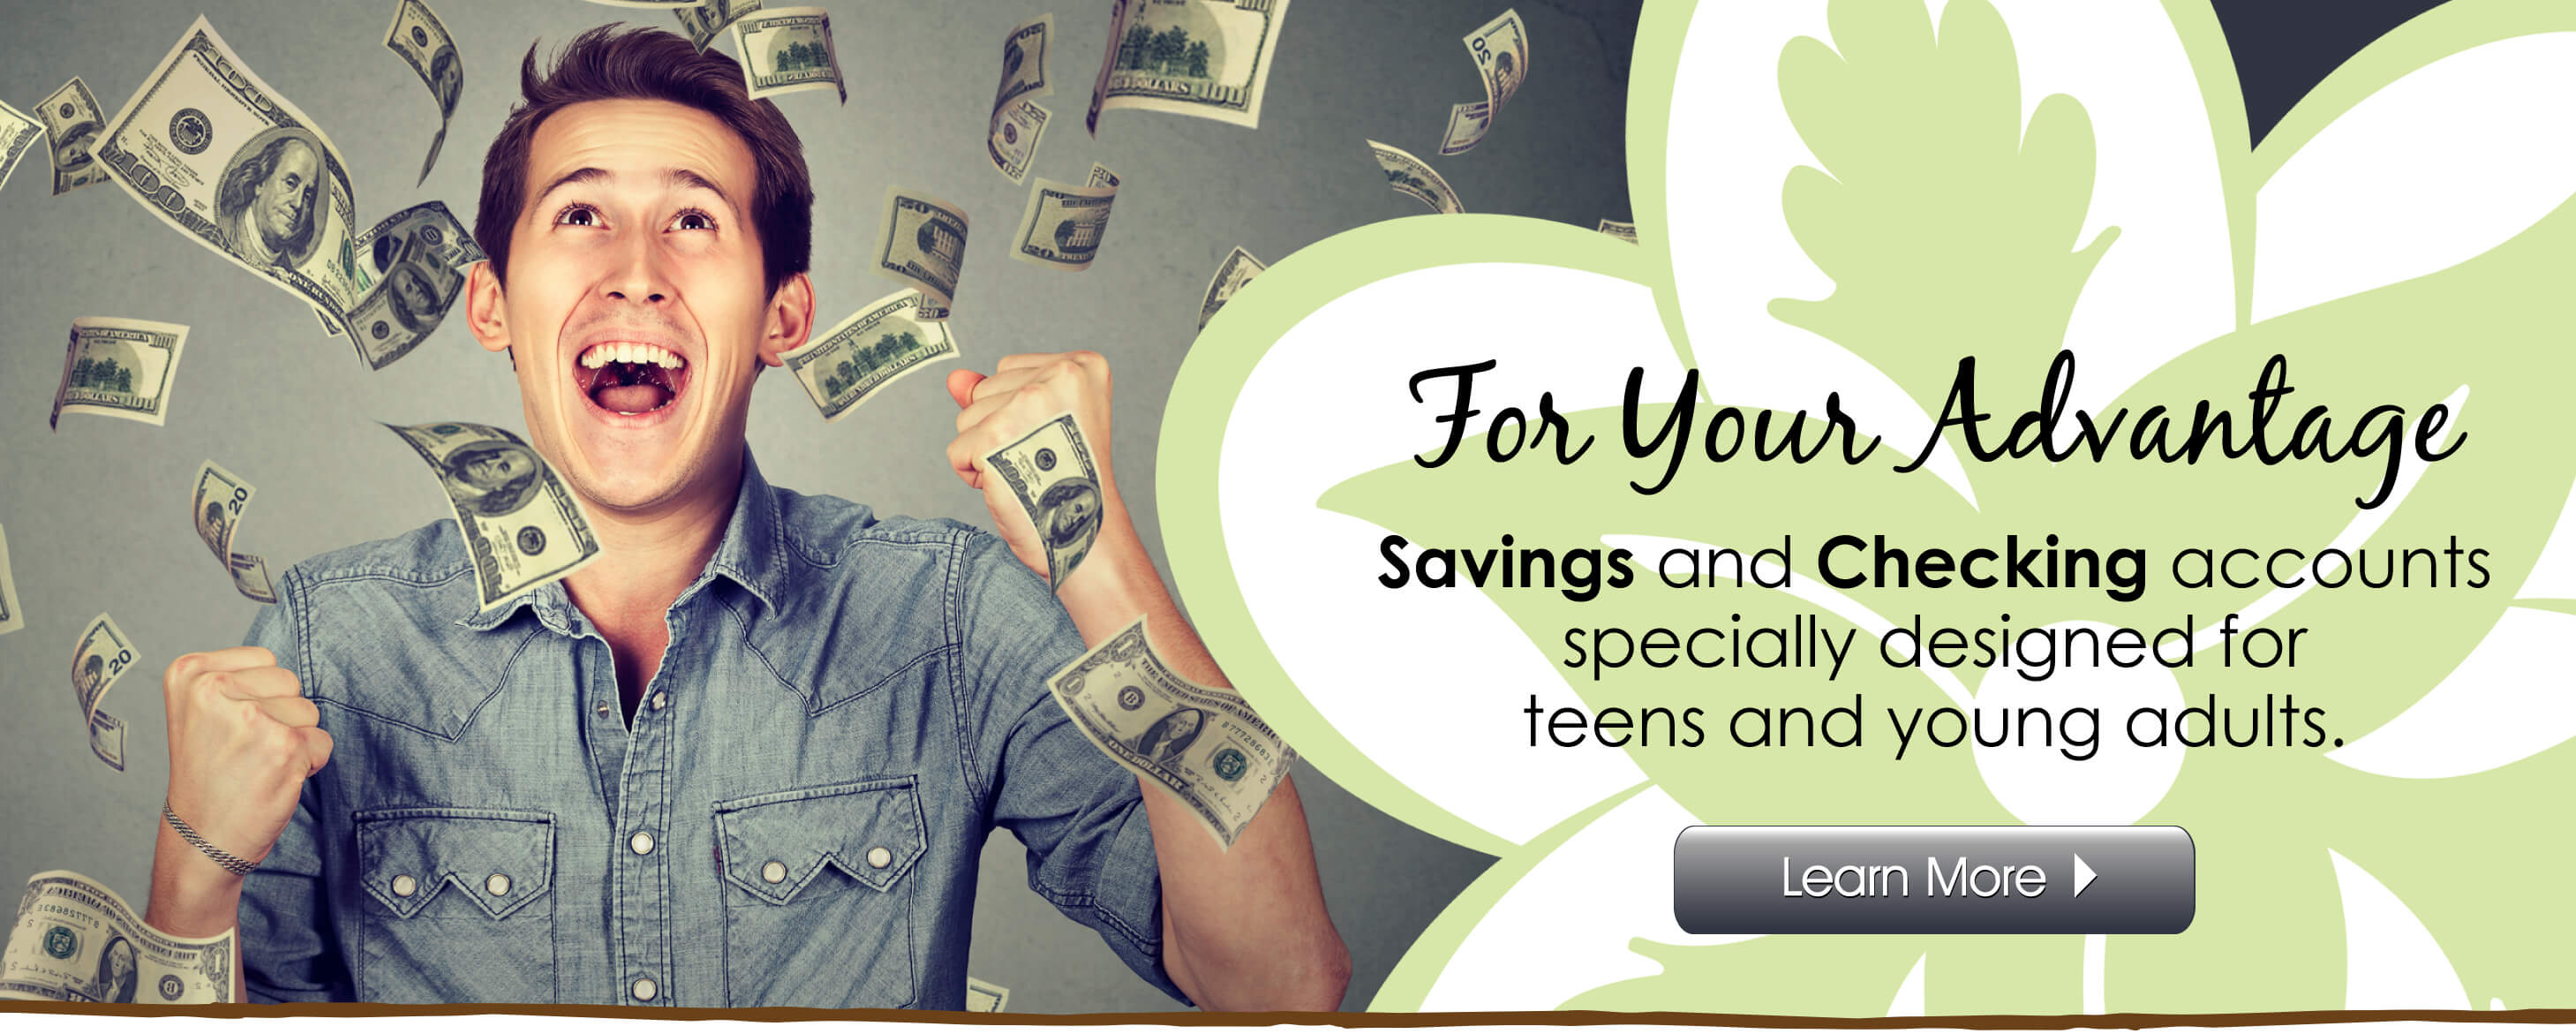 For Your Advantage - Checking and Saving accounts designed for teens and young adults.  Click to learn more.